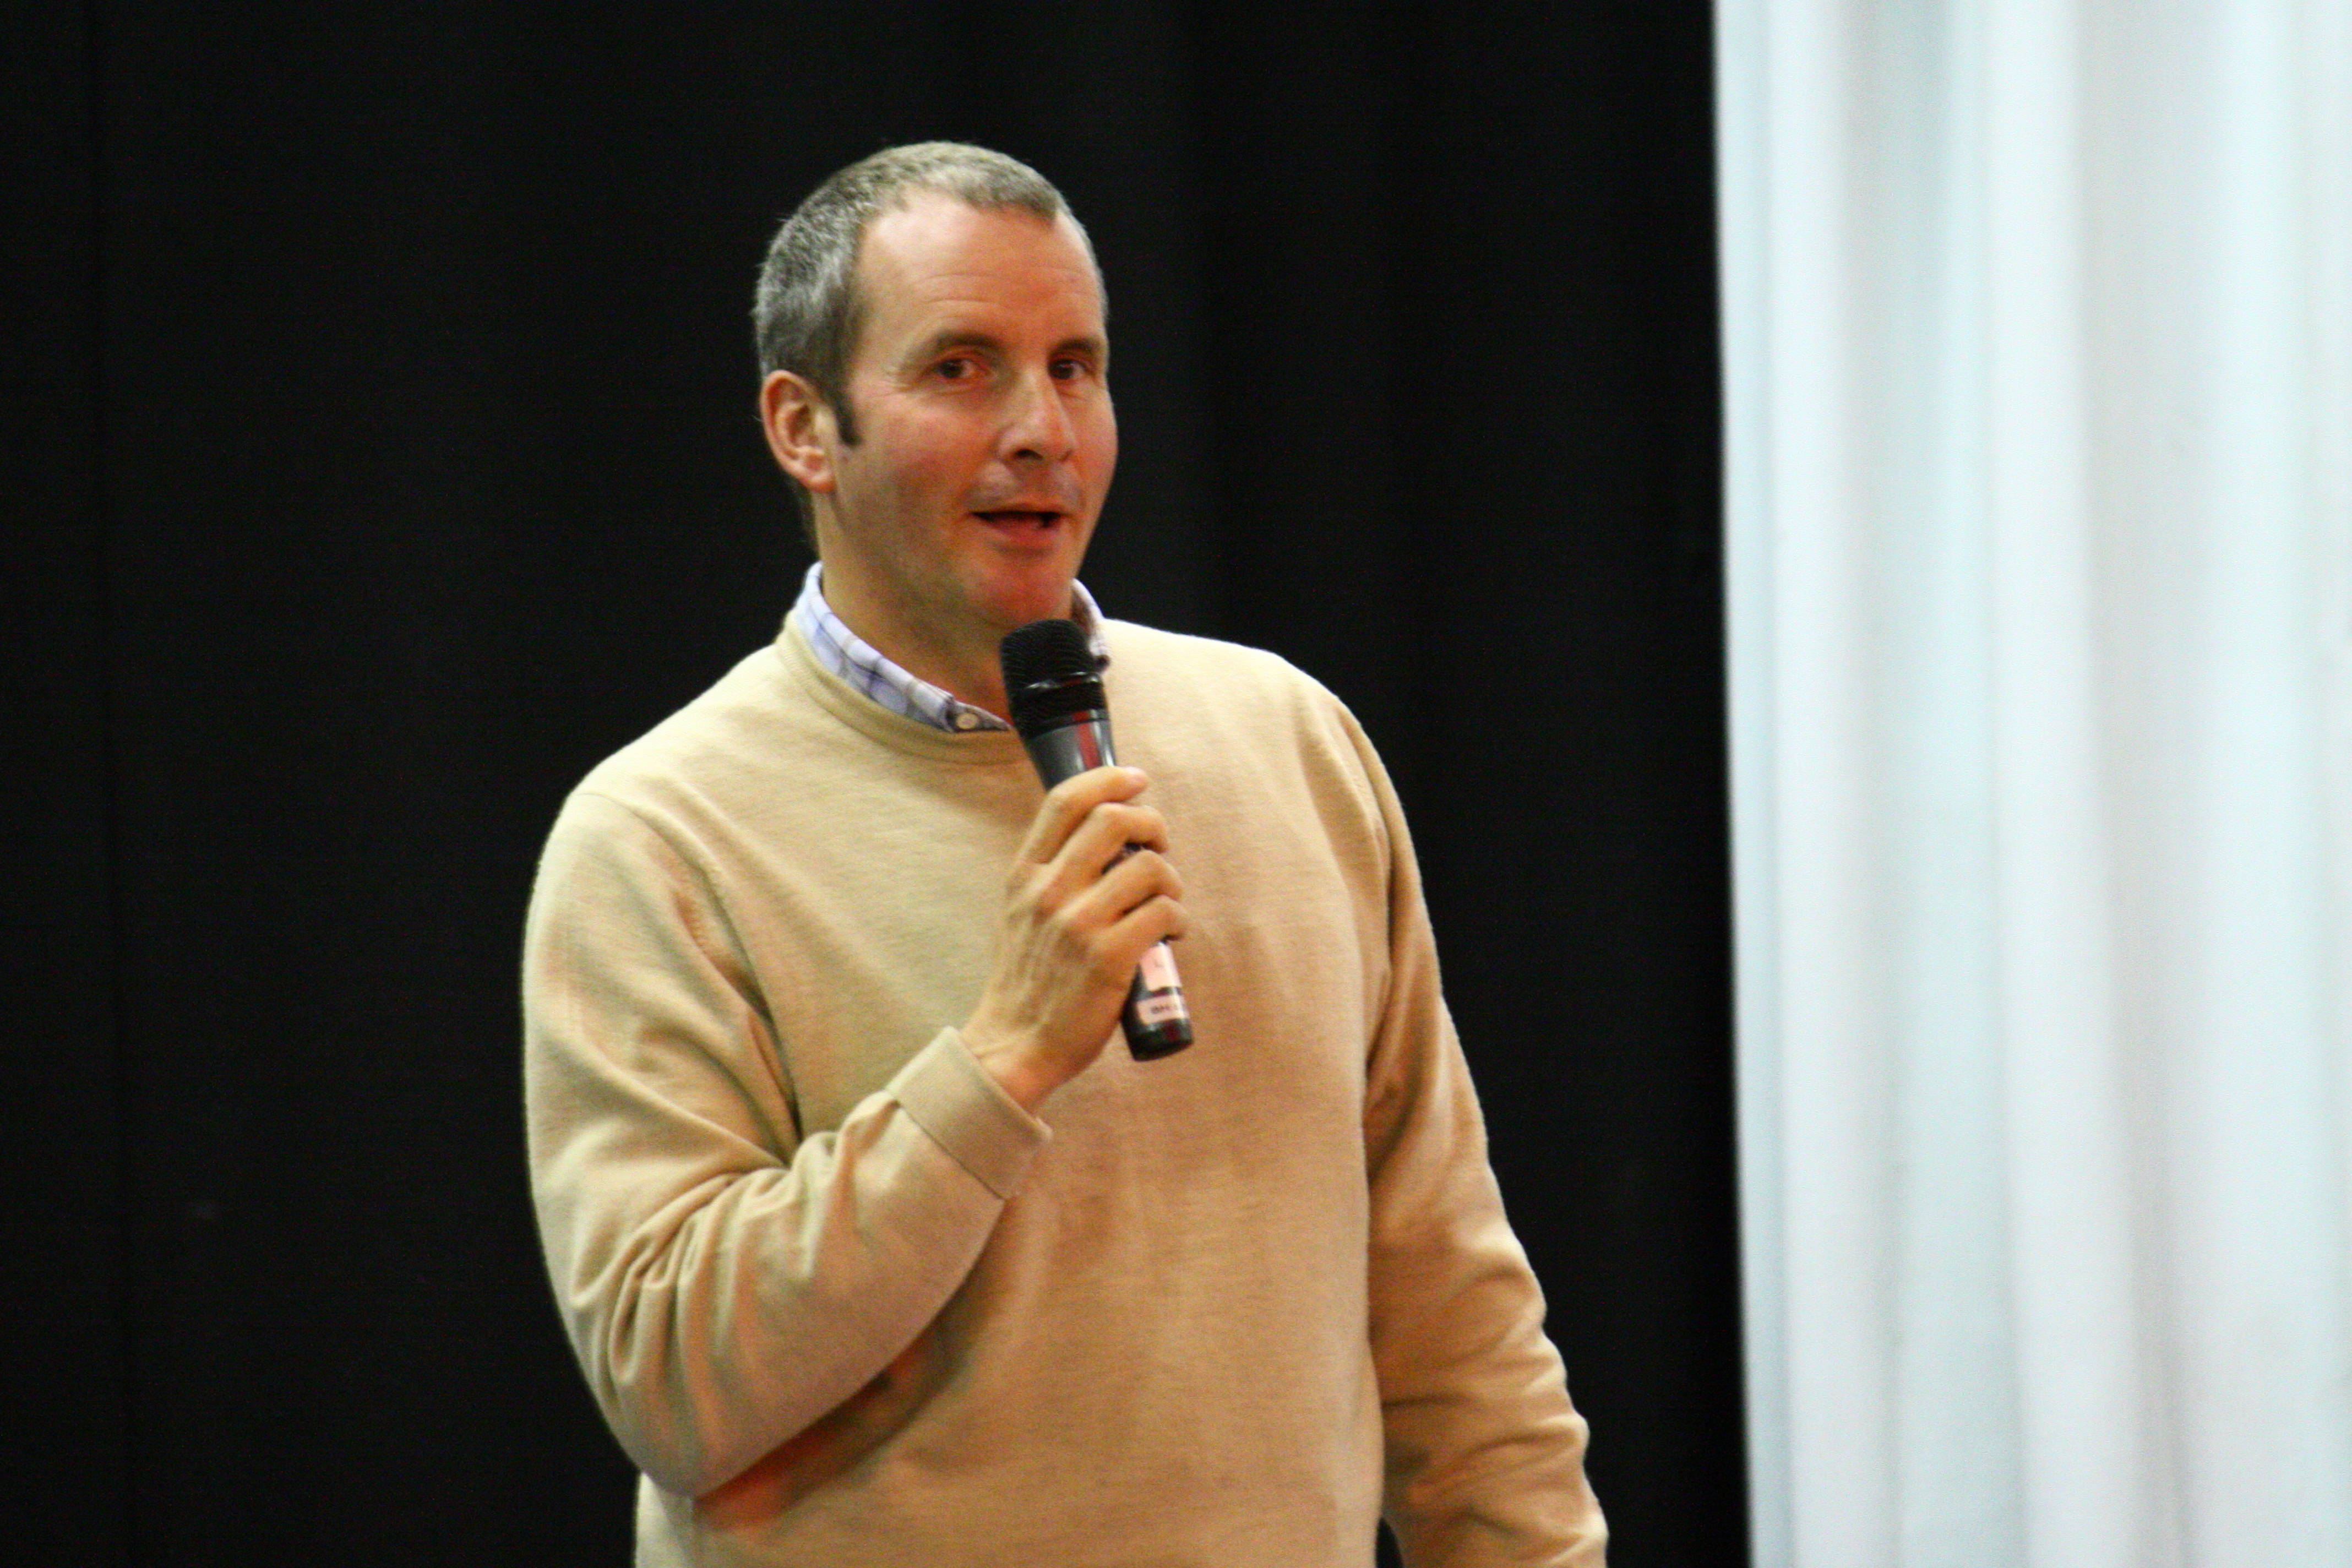 chris barrie age